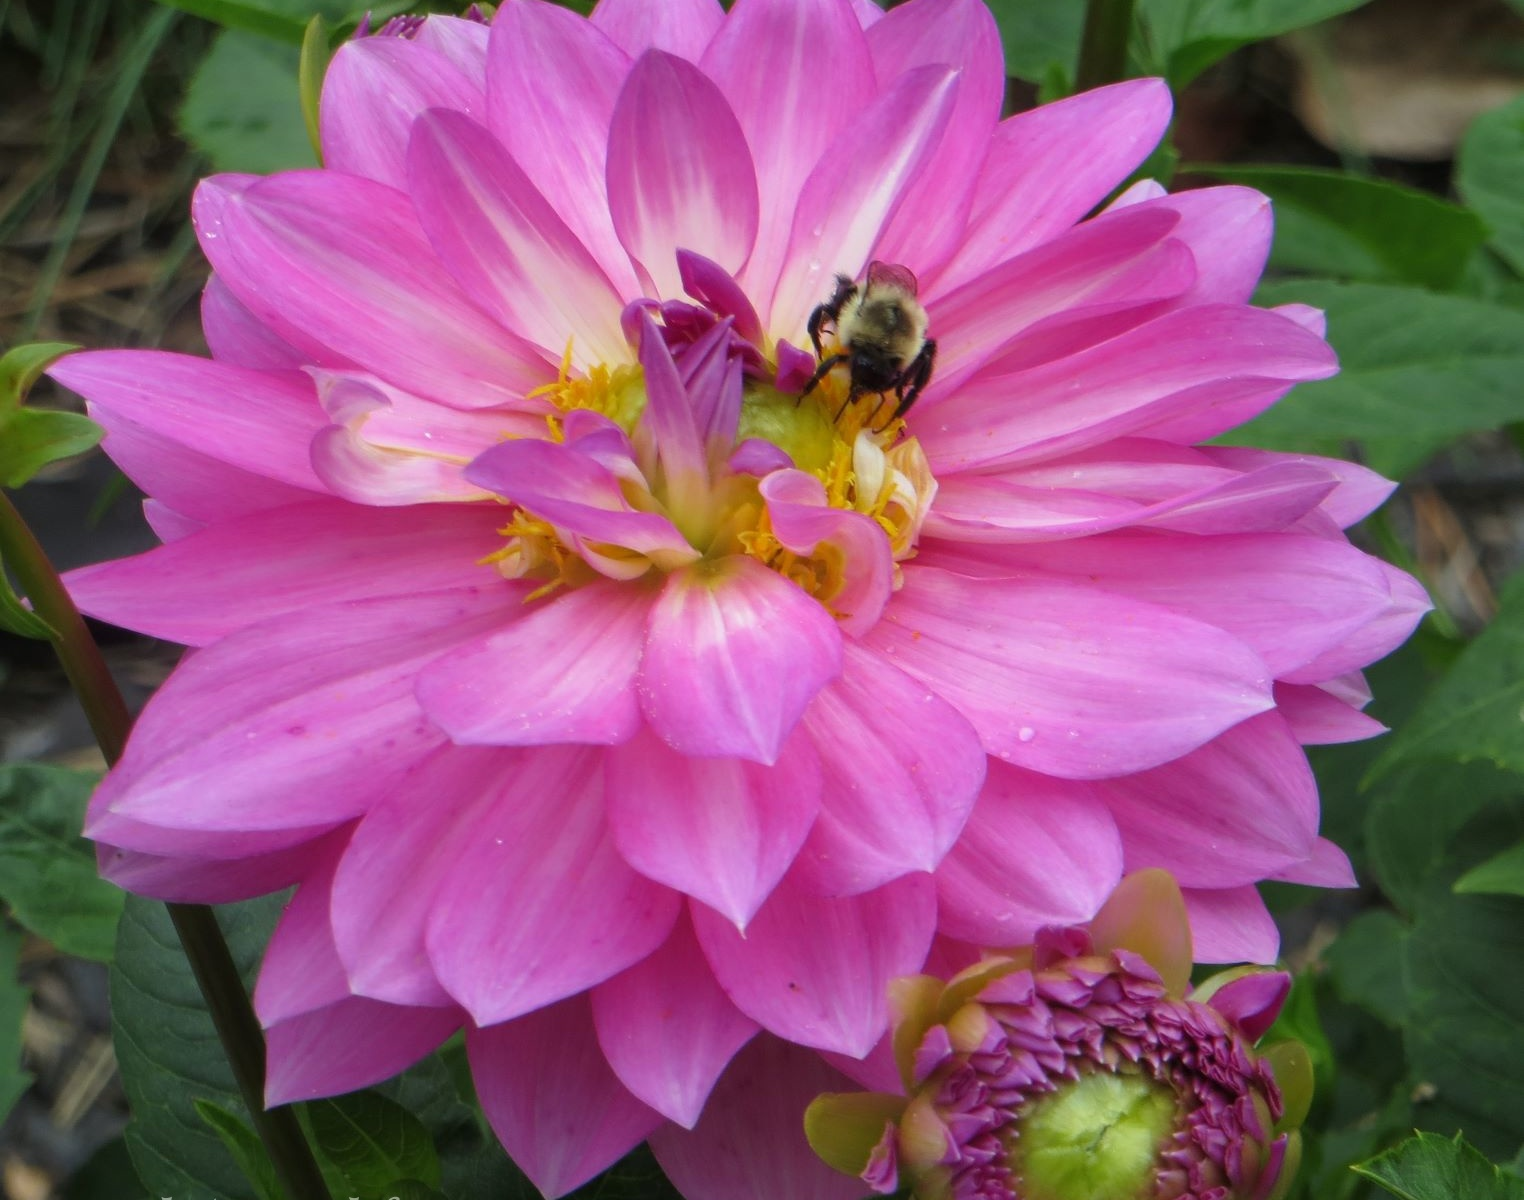 Buzzing bee on pink flower